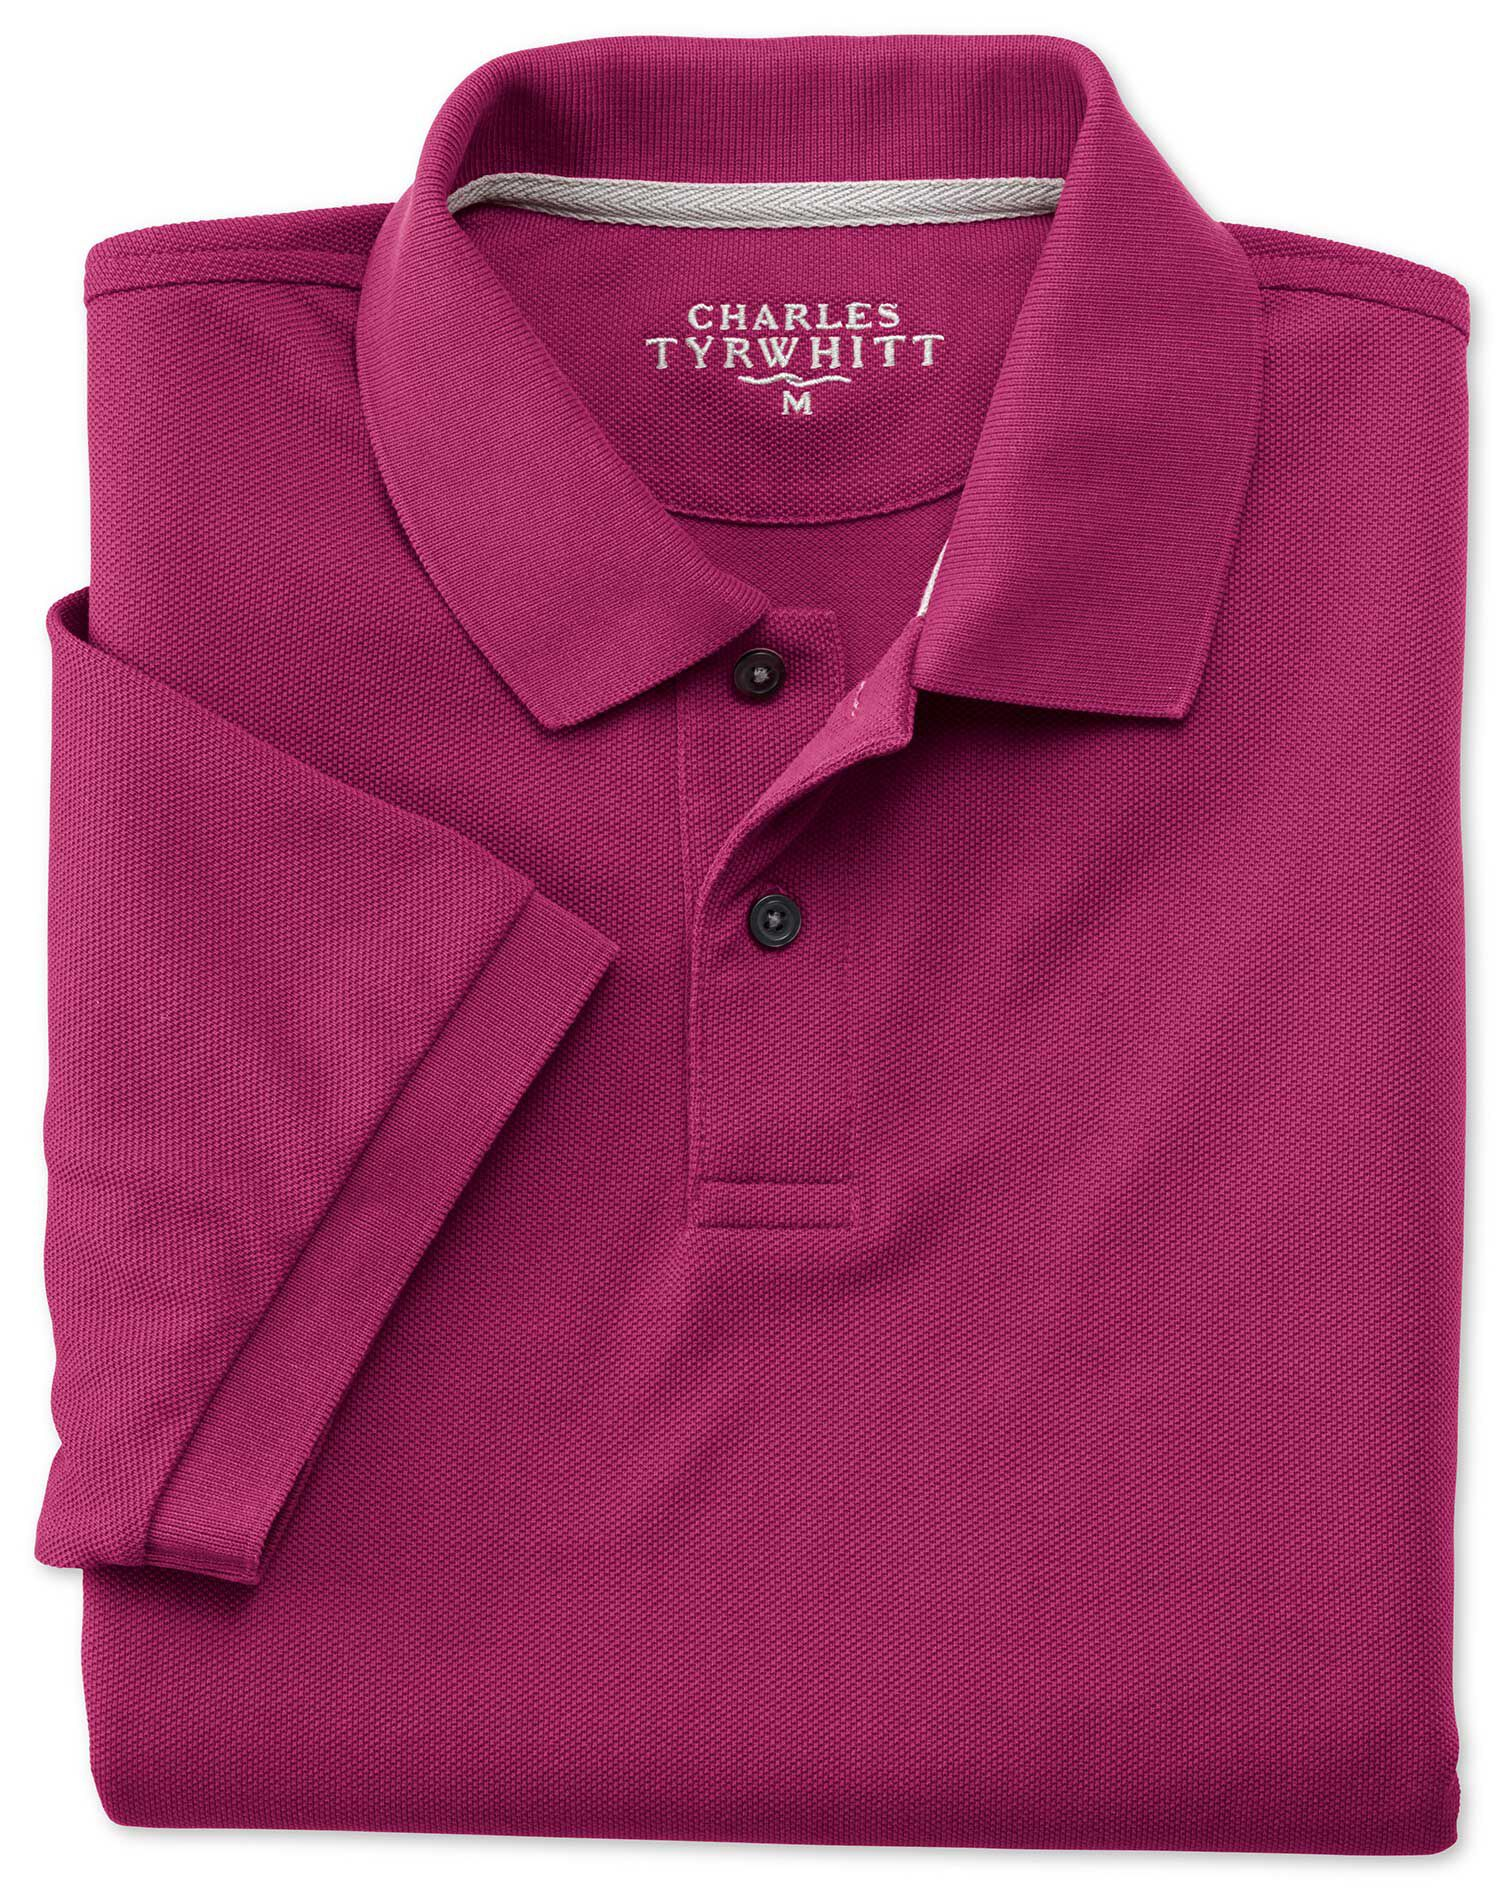 Berry Pique Cotton Polo Size XL by Charles Tyrwhitt